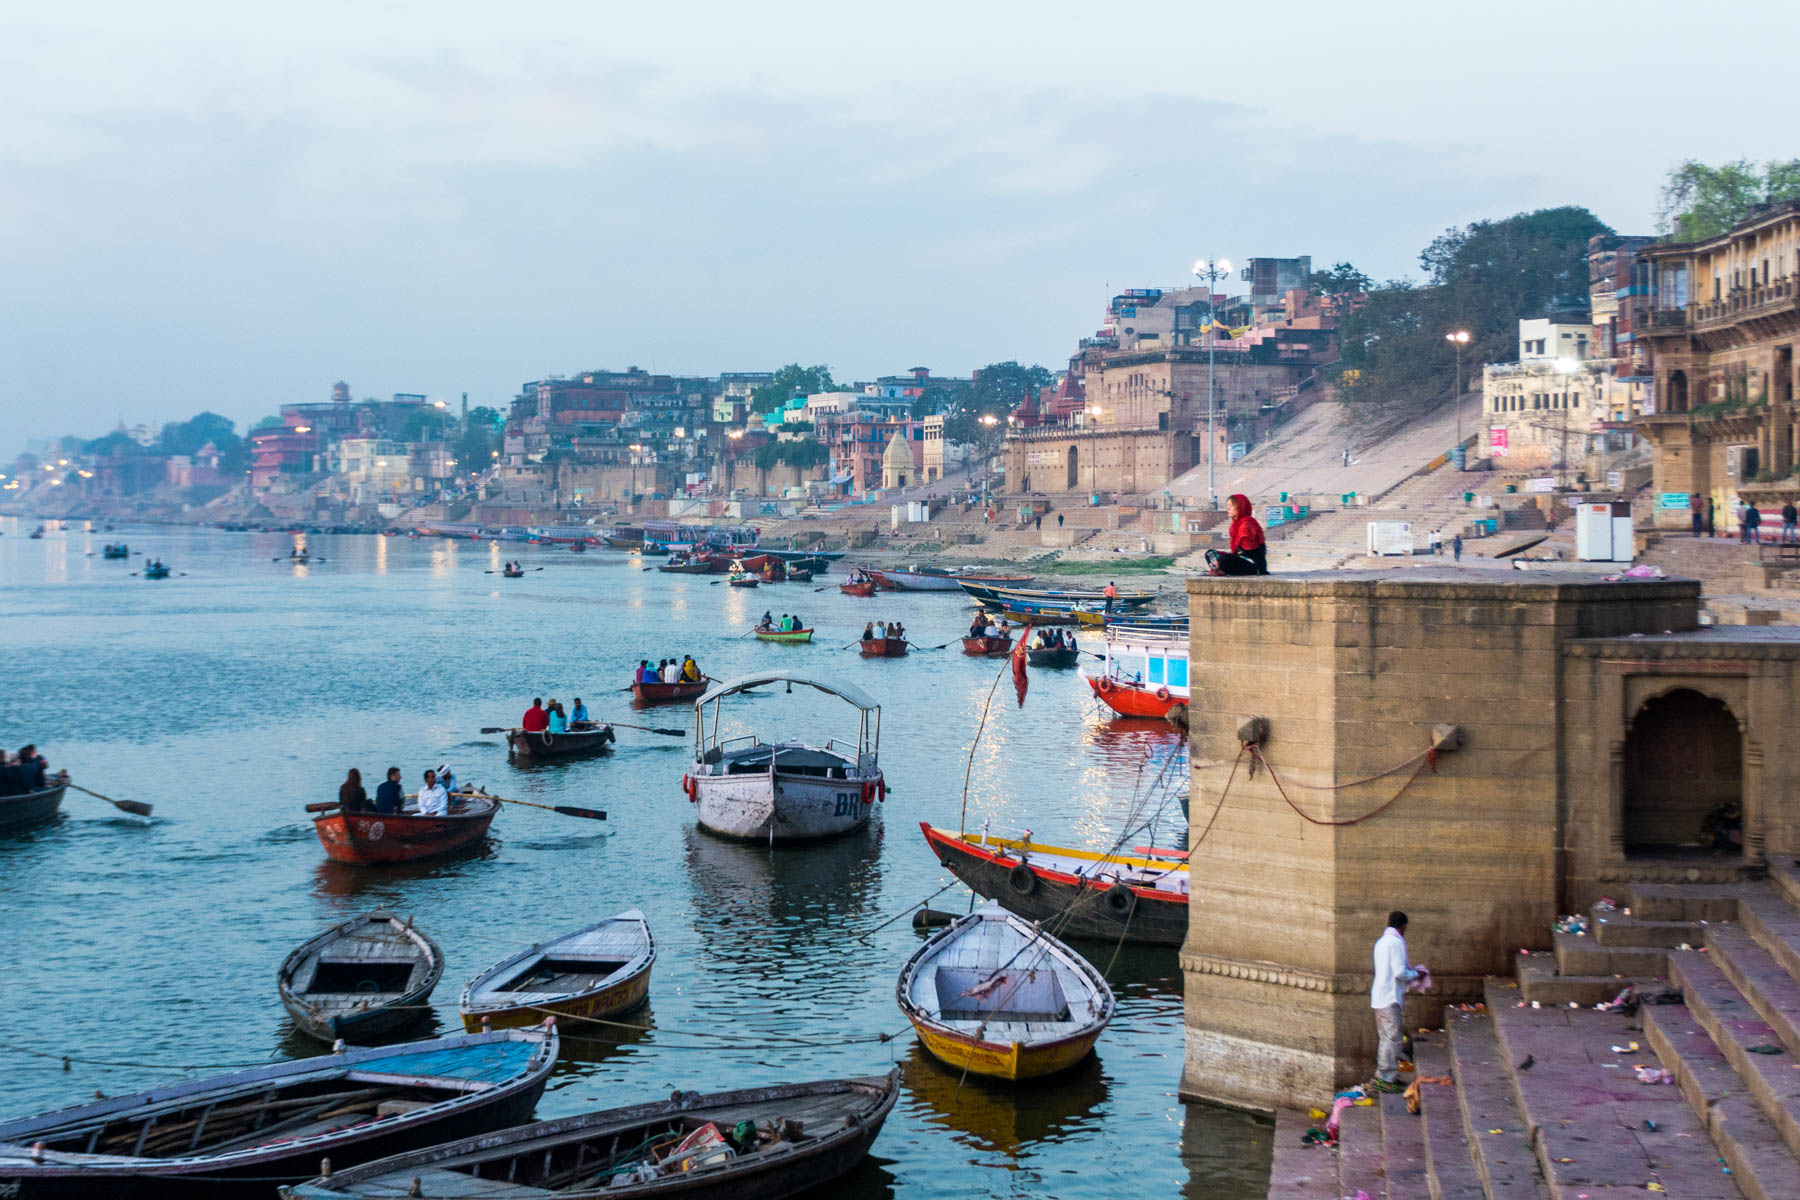 Where to find bhang lassi in Varanasi - Peace on the Varanasi ghats - Lost With Purpose